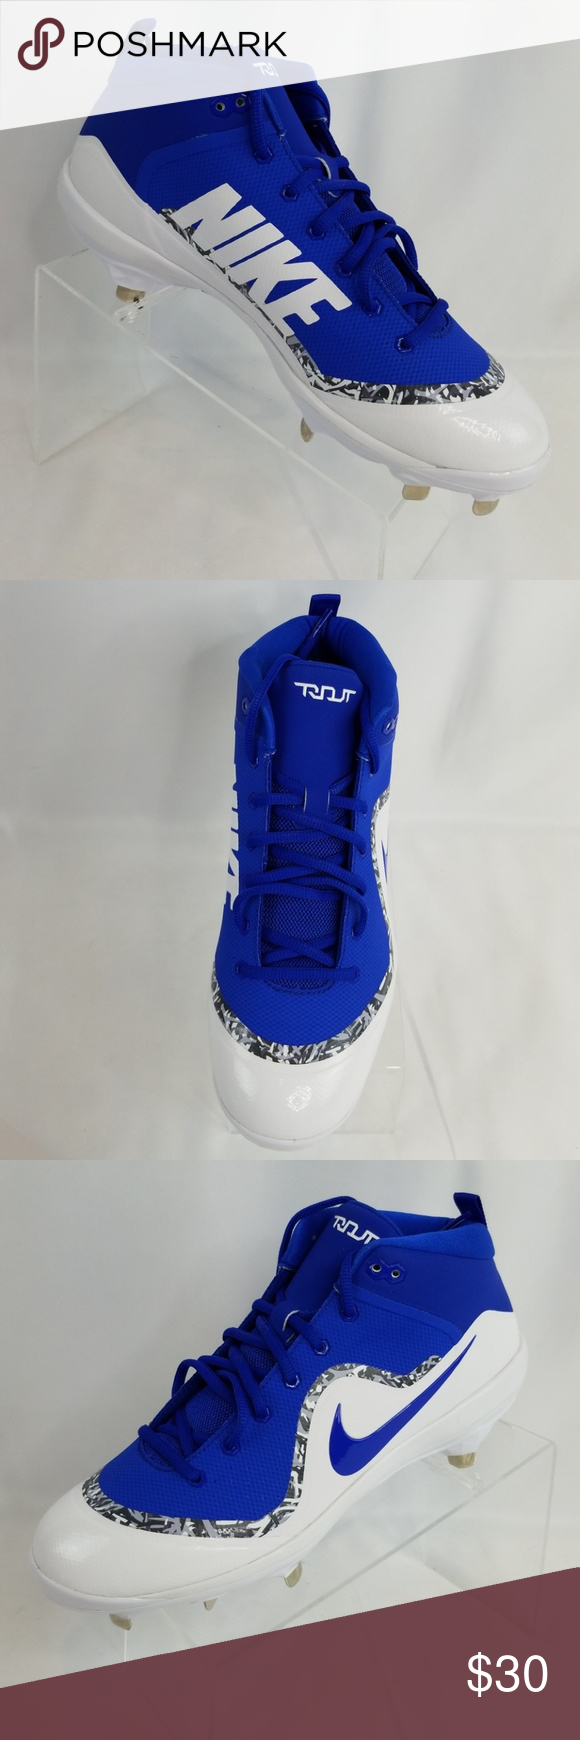 f746ff604fd Nike Force Air Trout 4 Pro Sz 10 Baseball Cleats Nike Force Air Trout 4 Pro  Mens Size 10 Baseball and Softball Cleats. NEW in box. 917920-444 Nike  Shoes ...